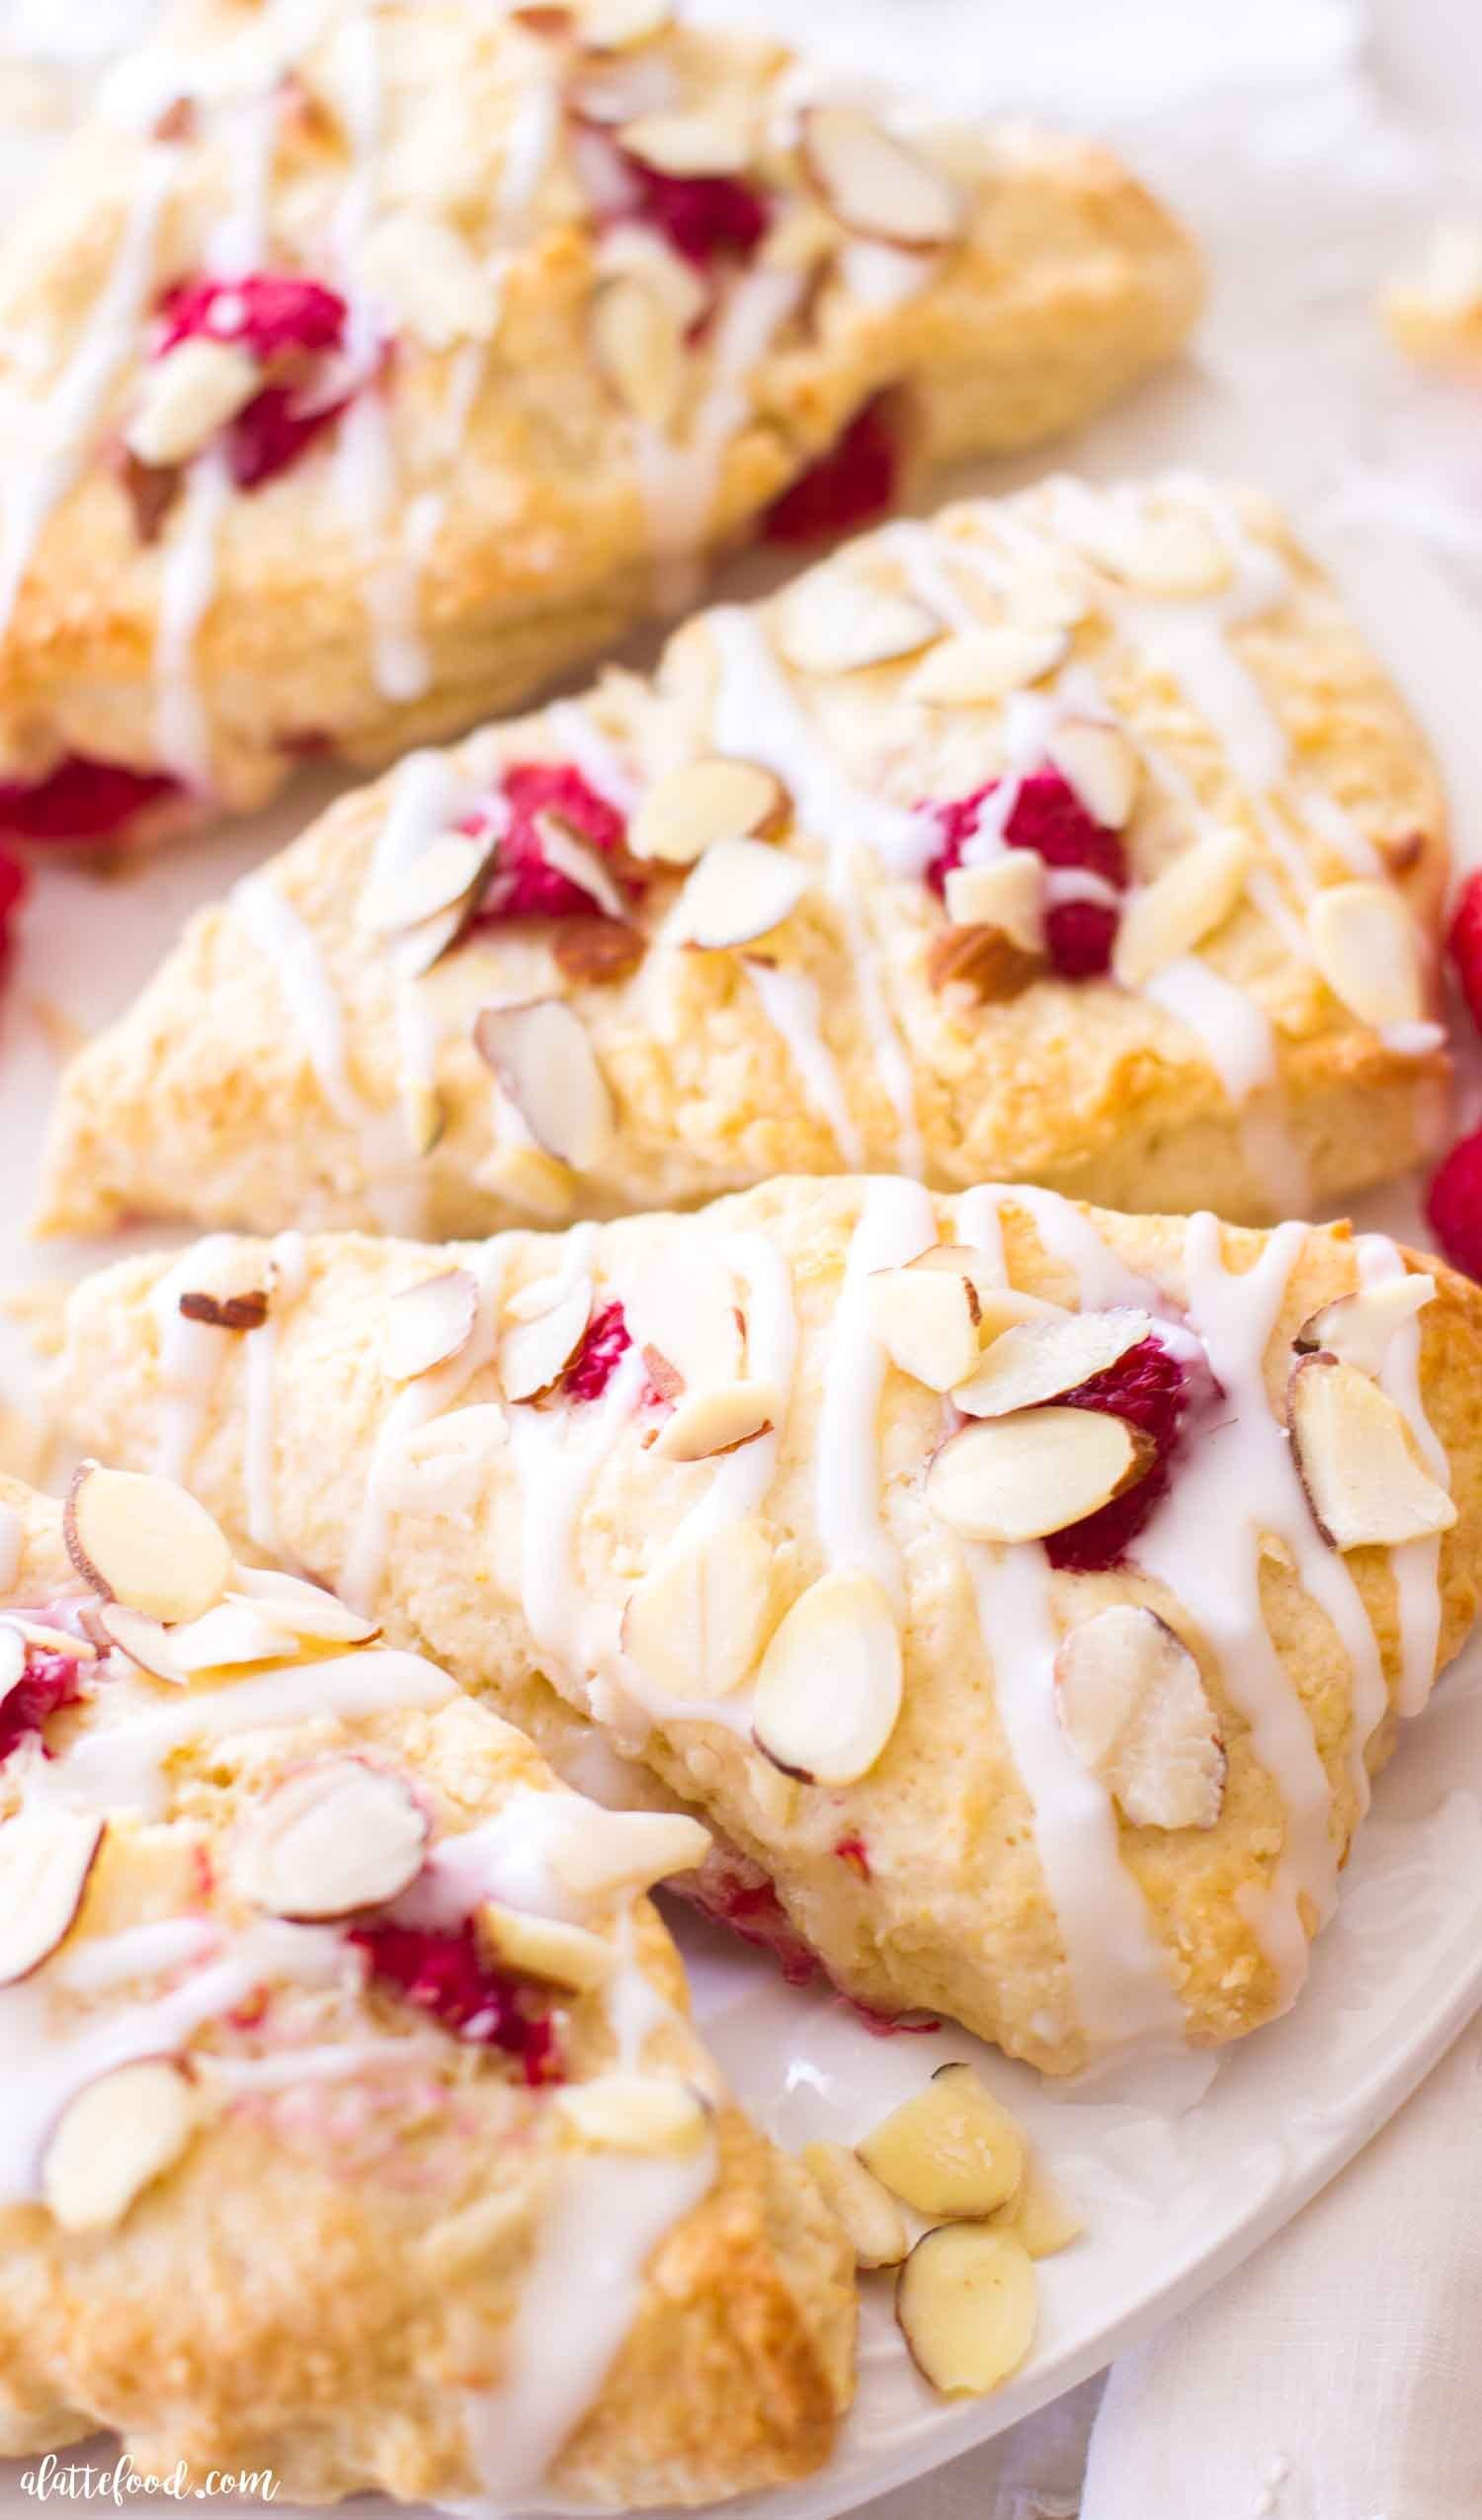 These Raspberry Almond Cream Scones Are Made With Sour Cream And Fresh Raspberries Easy Raspberry Scones Beg In 2020 Cream Scones Recipe Raspberry Almond Scone Recipe